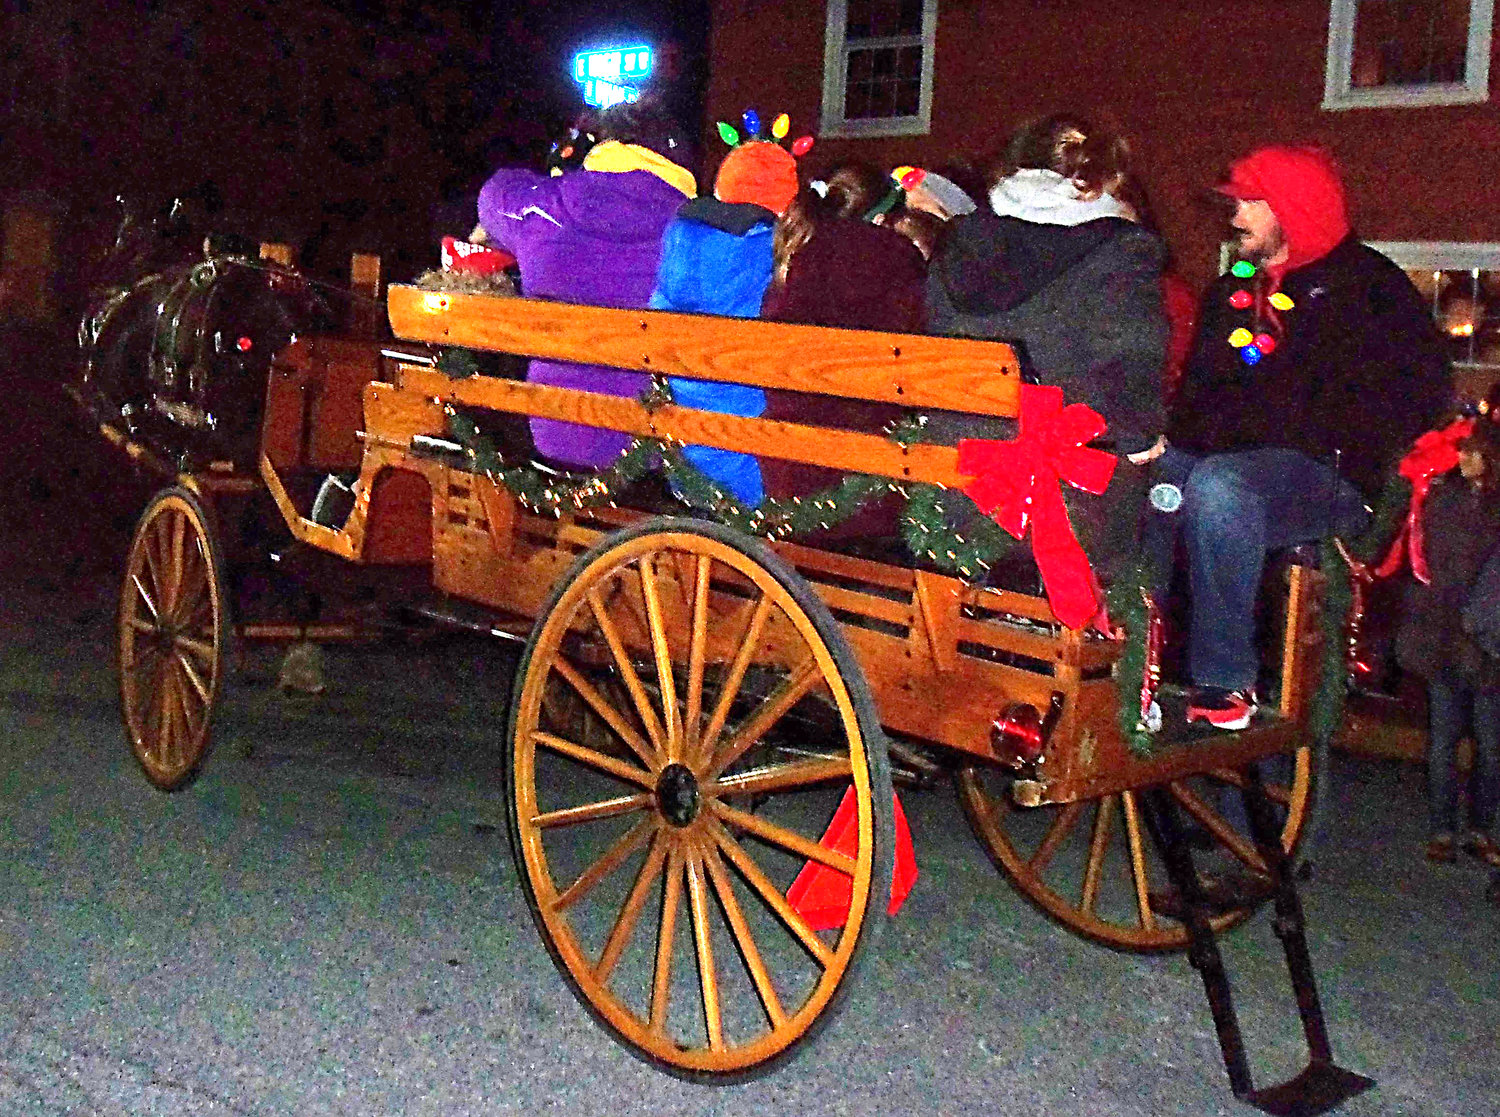 The South Mountain Carriage Co. offered public horse-and-carriage rides at the Middletown borough tree-lighting Saturday, Nov. 30.